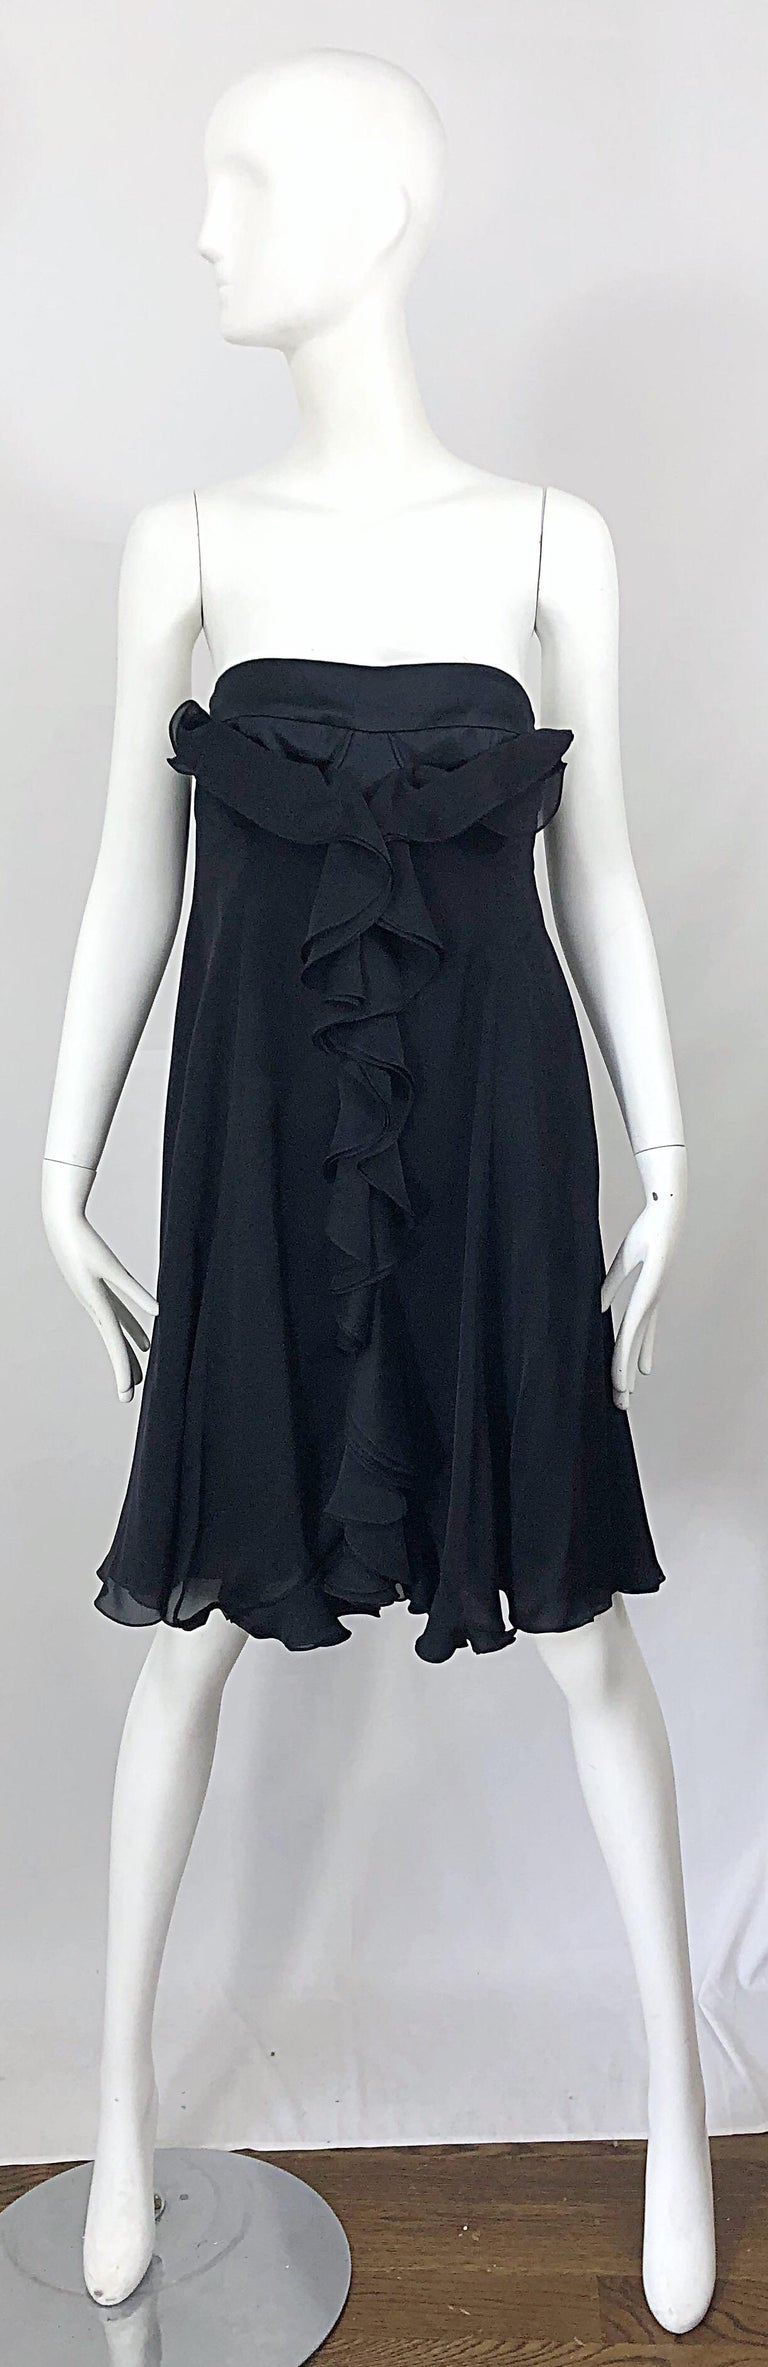 Chic brand new with tags YVES SAINT LAURENT Spring 2008 black silk strapless dress! Features intricate interior corset boning that holds everything in place. Hidden zipper up the side with hook-and-eye closure. Additional lace closures at back with